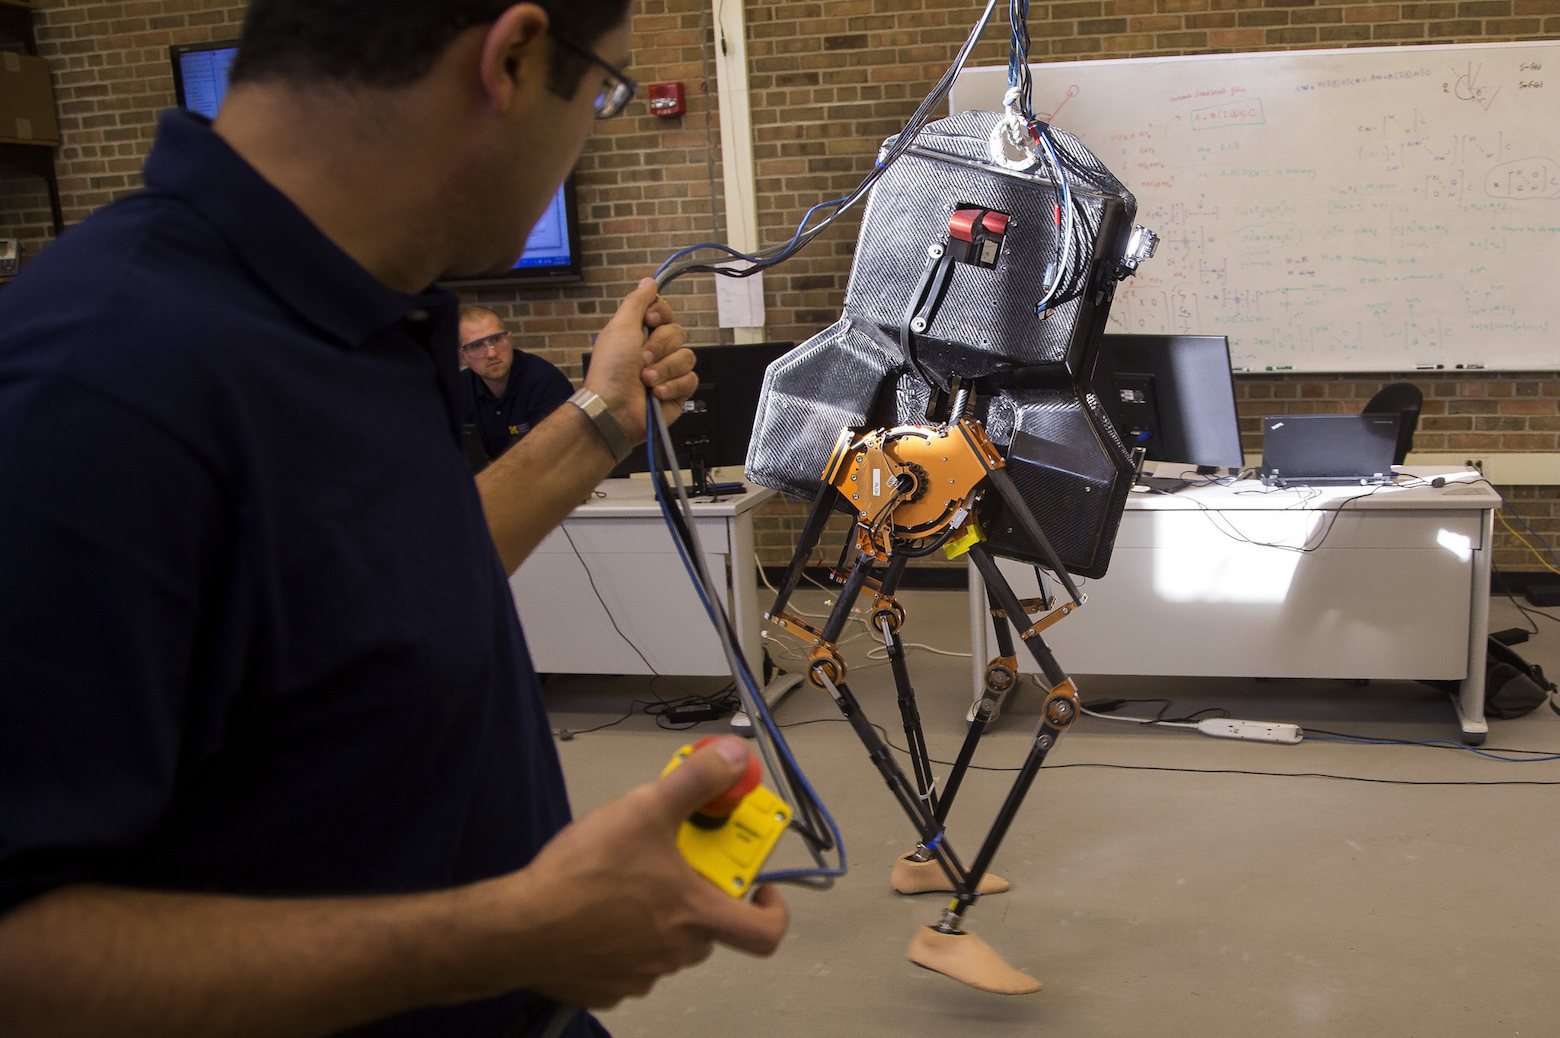 Kaveh Akbari Hamed, ECE Research Fellow, holds the stop mechanism while testing MARLO, a bipedal robot, in a lab located in the GG Brown Building on November 20, 2013.